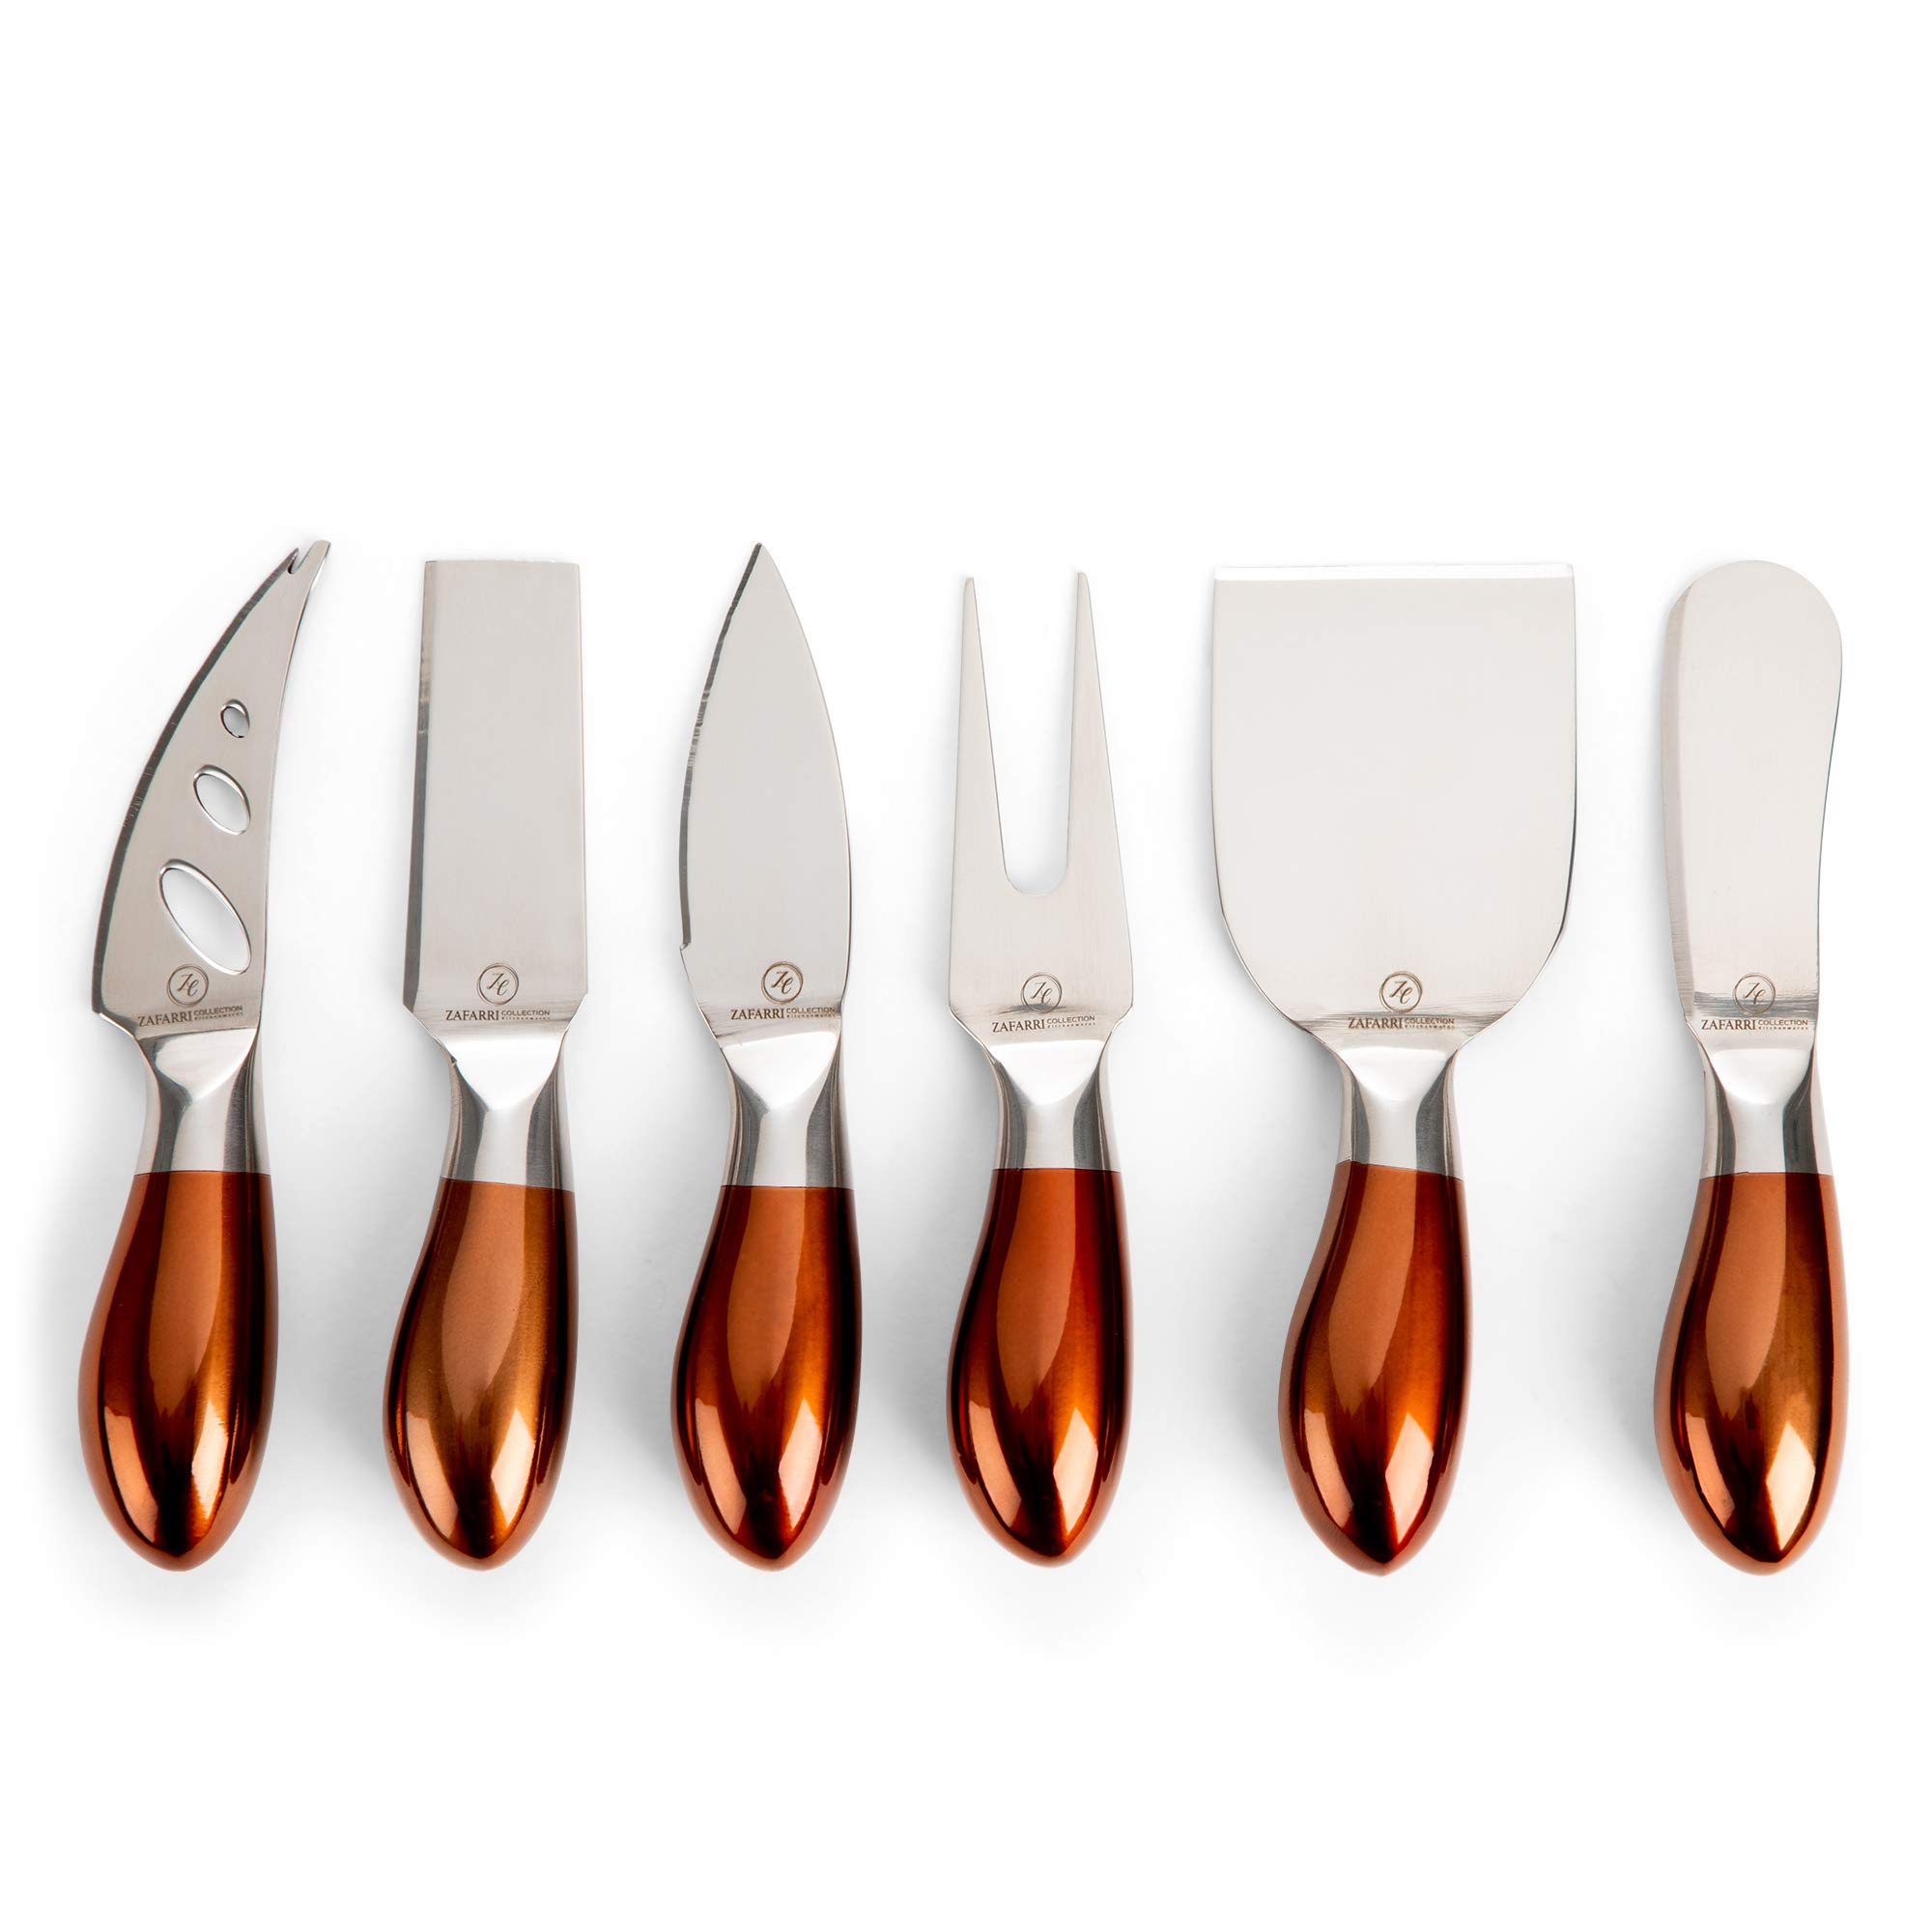 Elegant Cheese Knives, Set of 6, Stainless Steel with Rose Gold Handles - 6-Piece Cheese Spreading Knife Sets for Charcuterie Boards, Platters, Appetizers - Beautiful Cutlery Gift Set